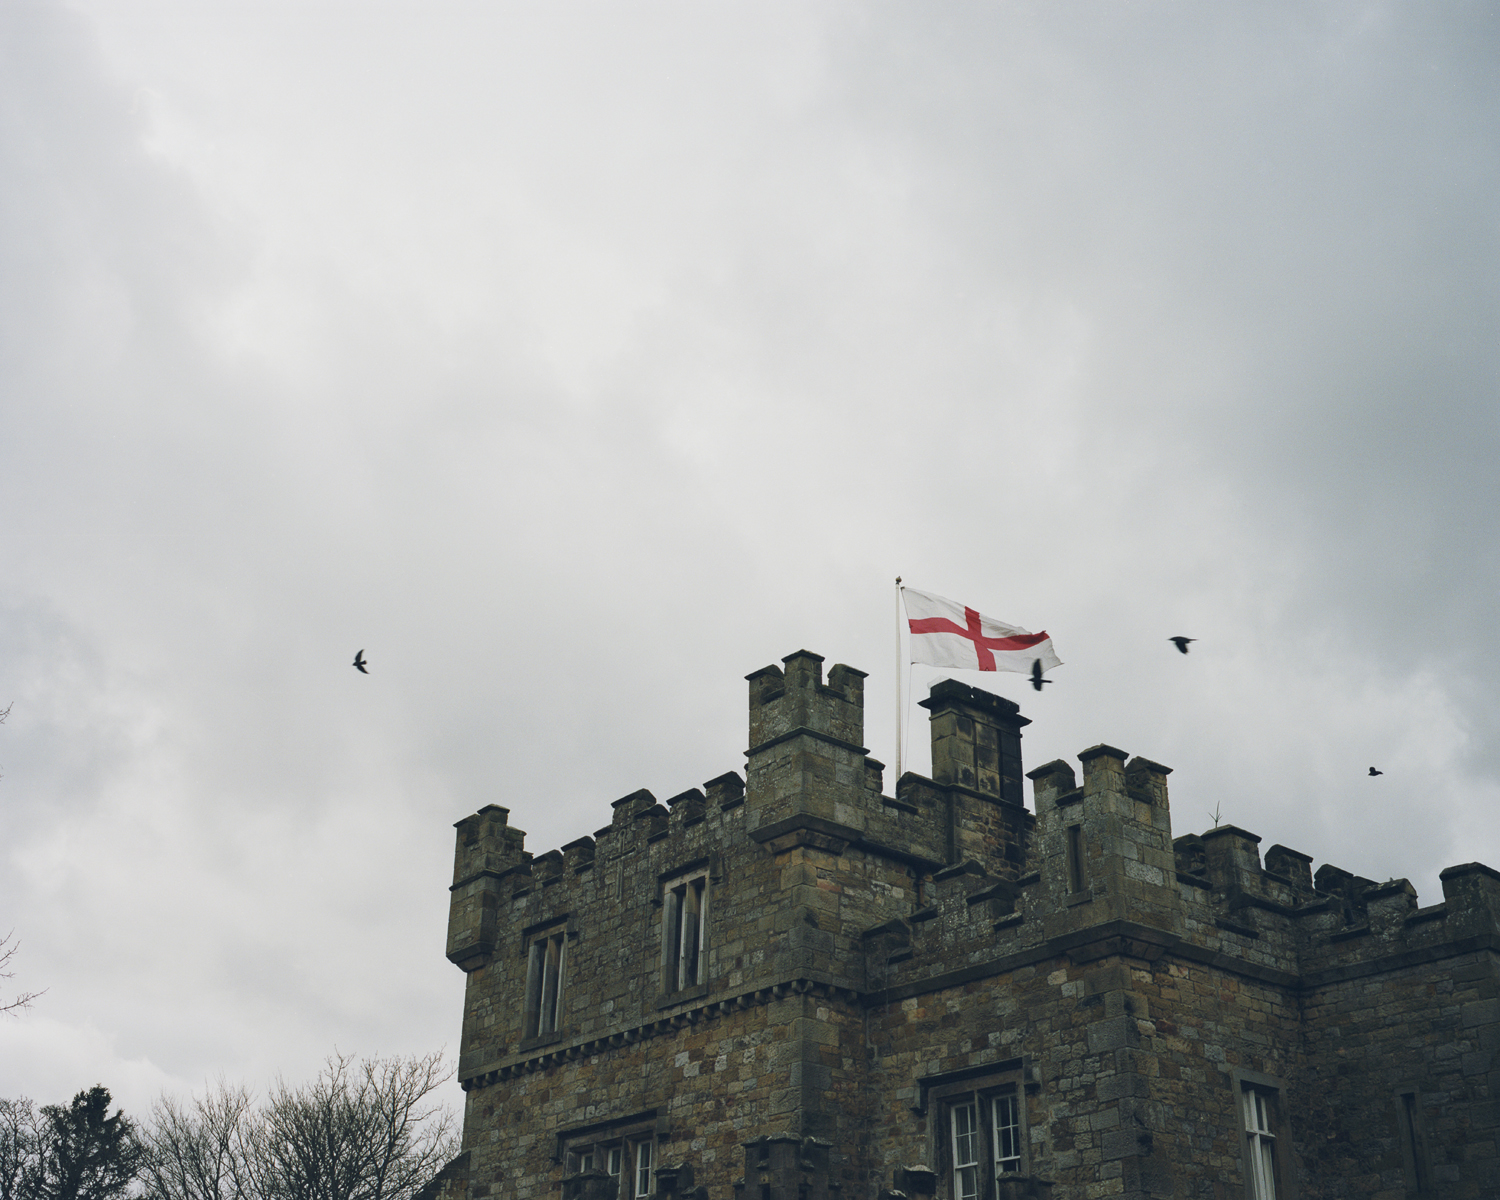 Northumberland has more castles than any other county in England, evidence of its violent past.